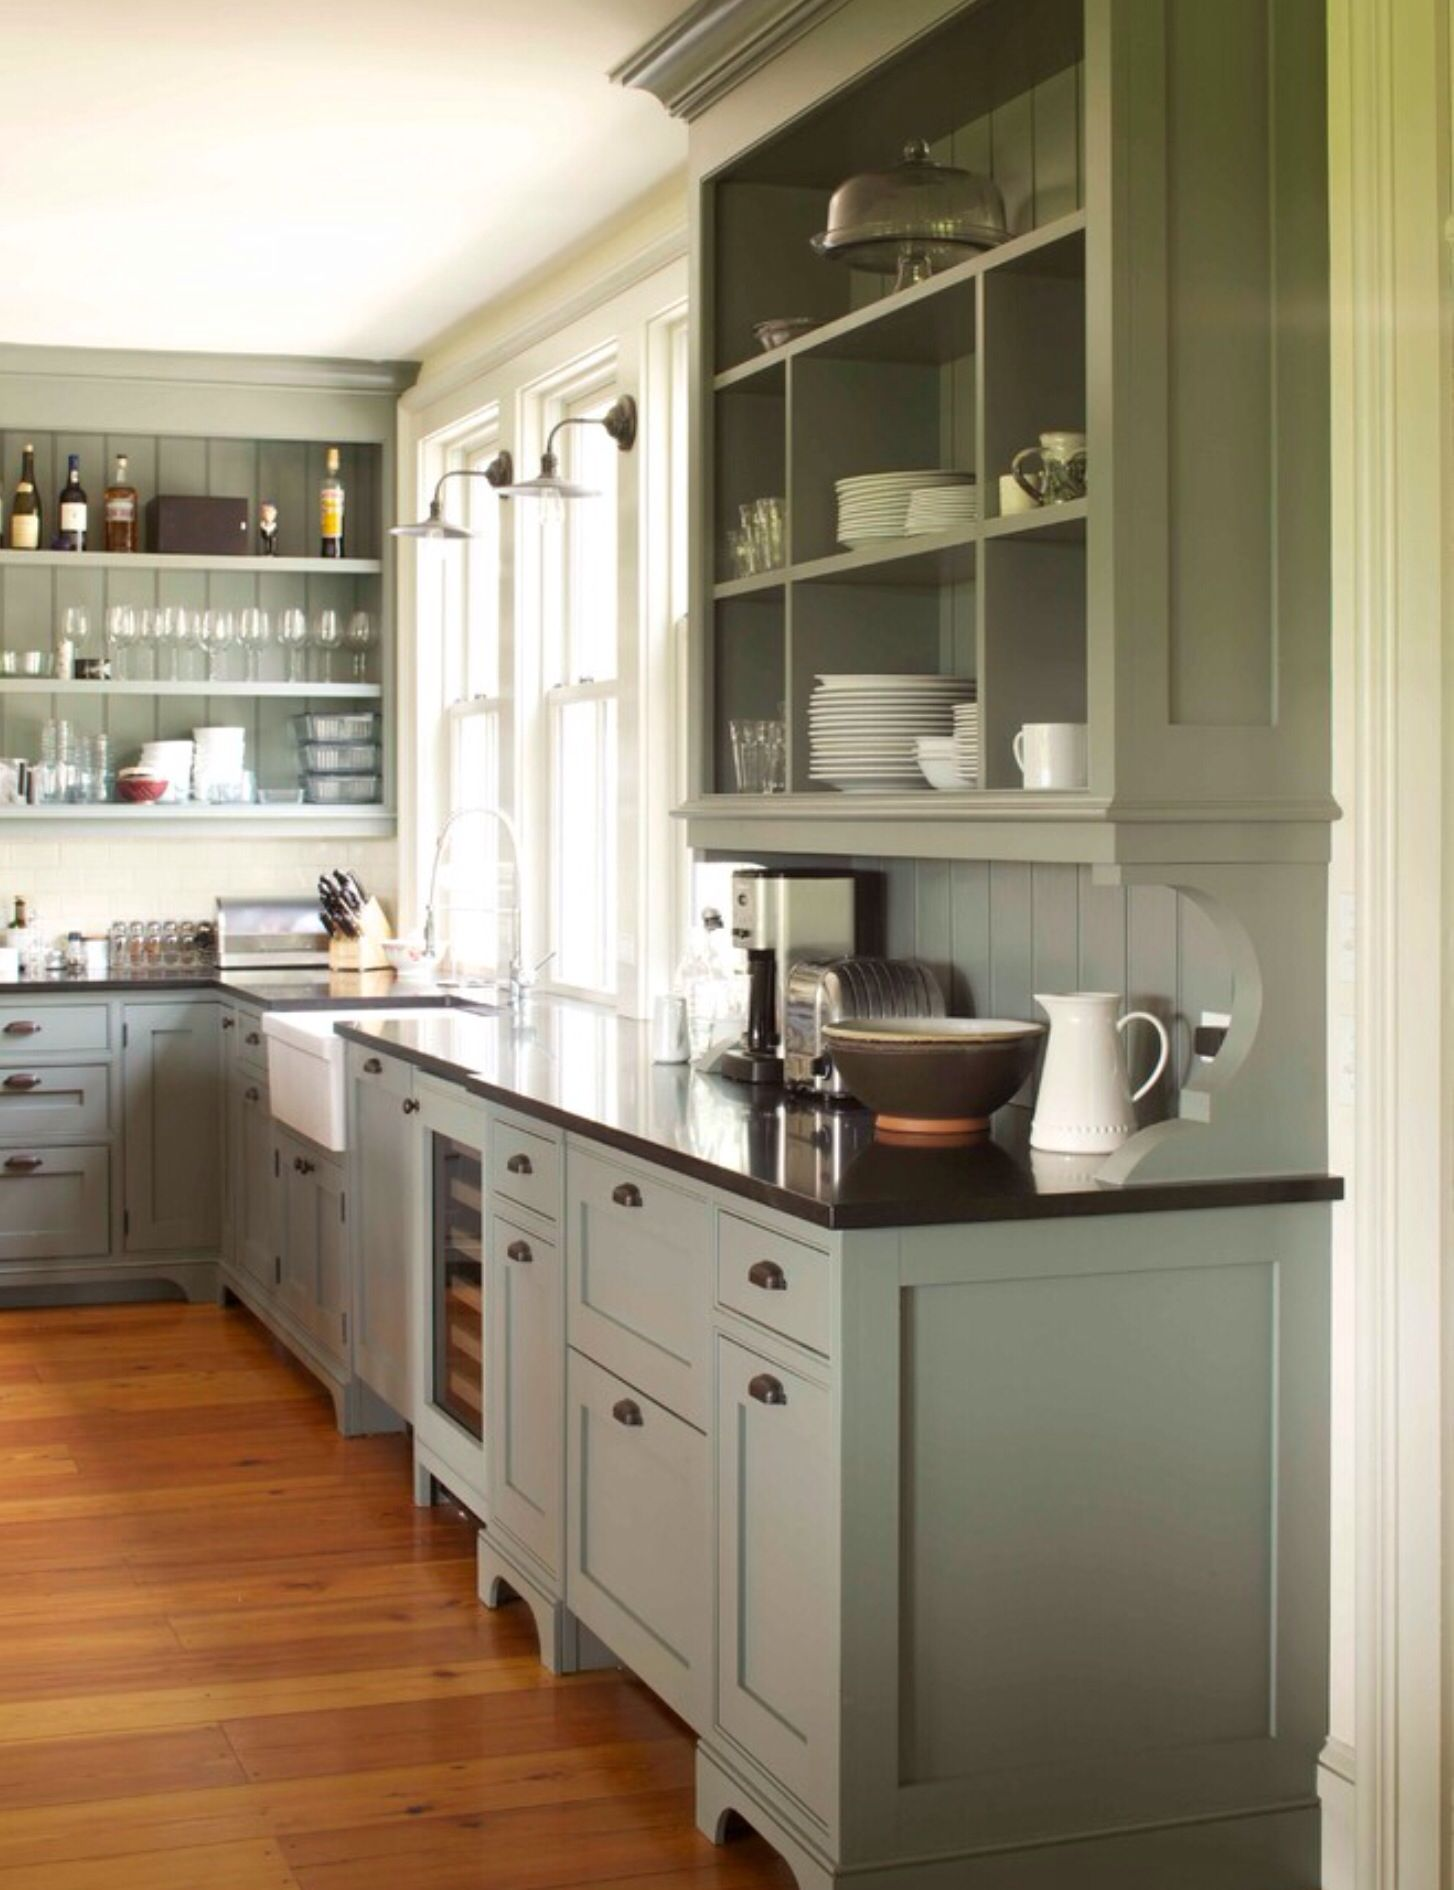 Pin By Jenny Zanatta On 3331 Kitchen Kitchen Cabinet Design Farmhouse Kitchen Design Farmhouse Kitchen Cabinets